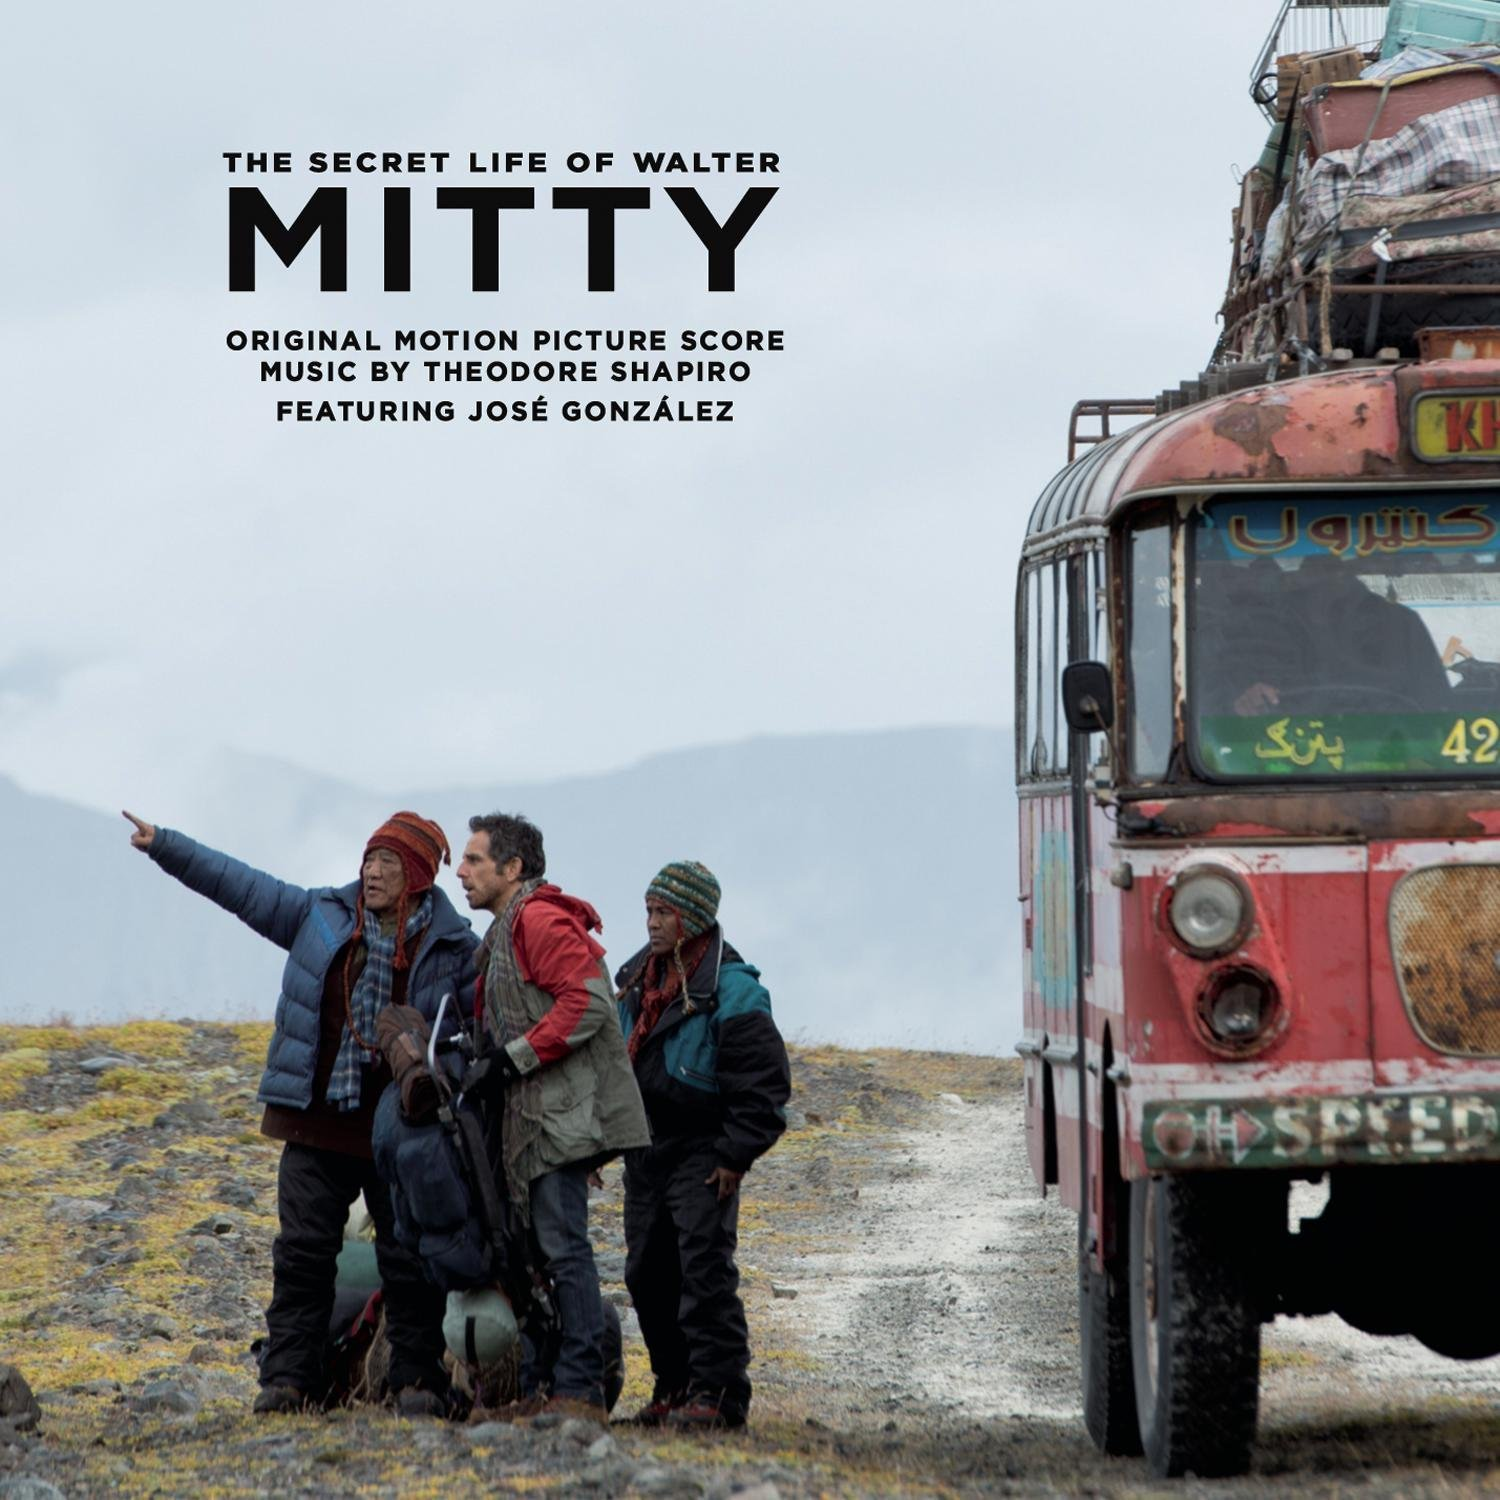 walter mitty wallpaper - photo #14